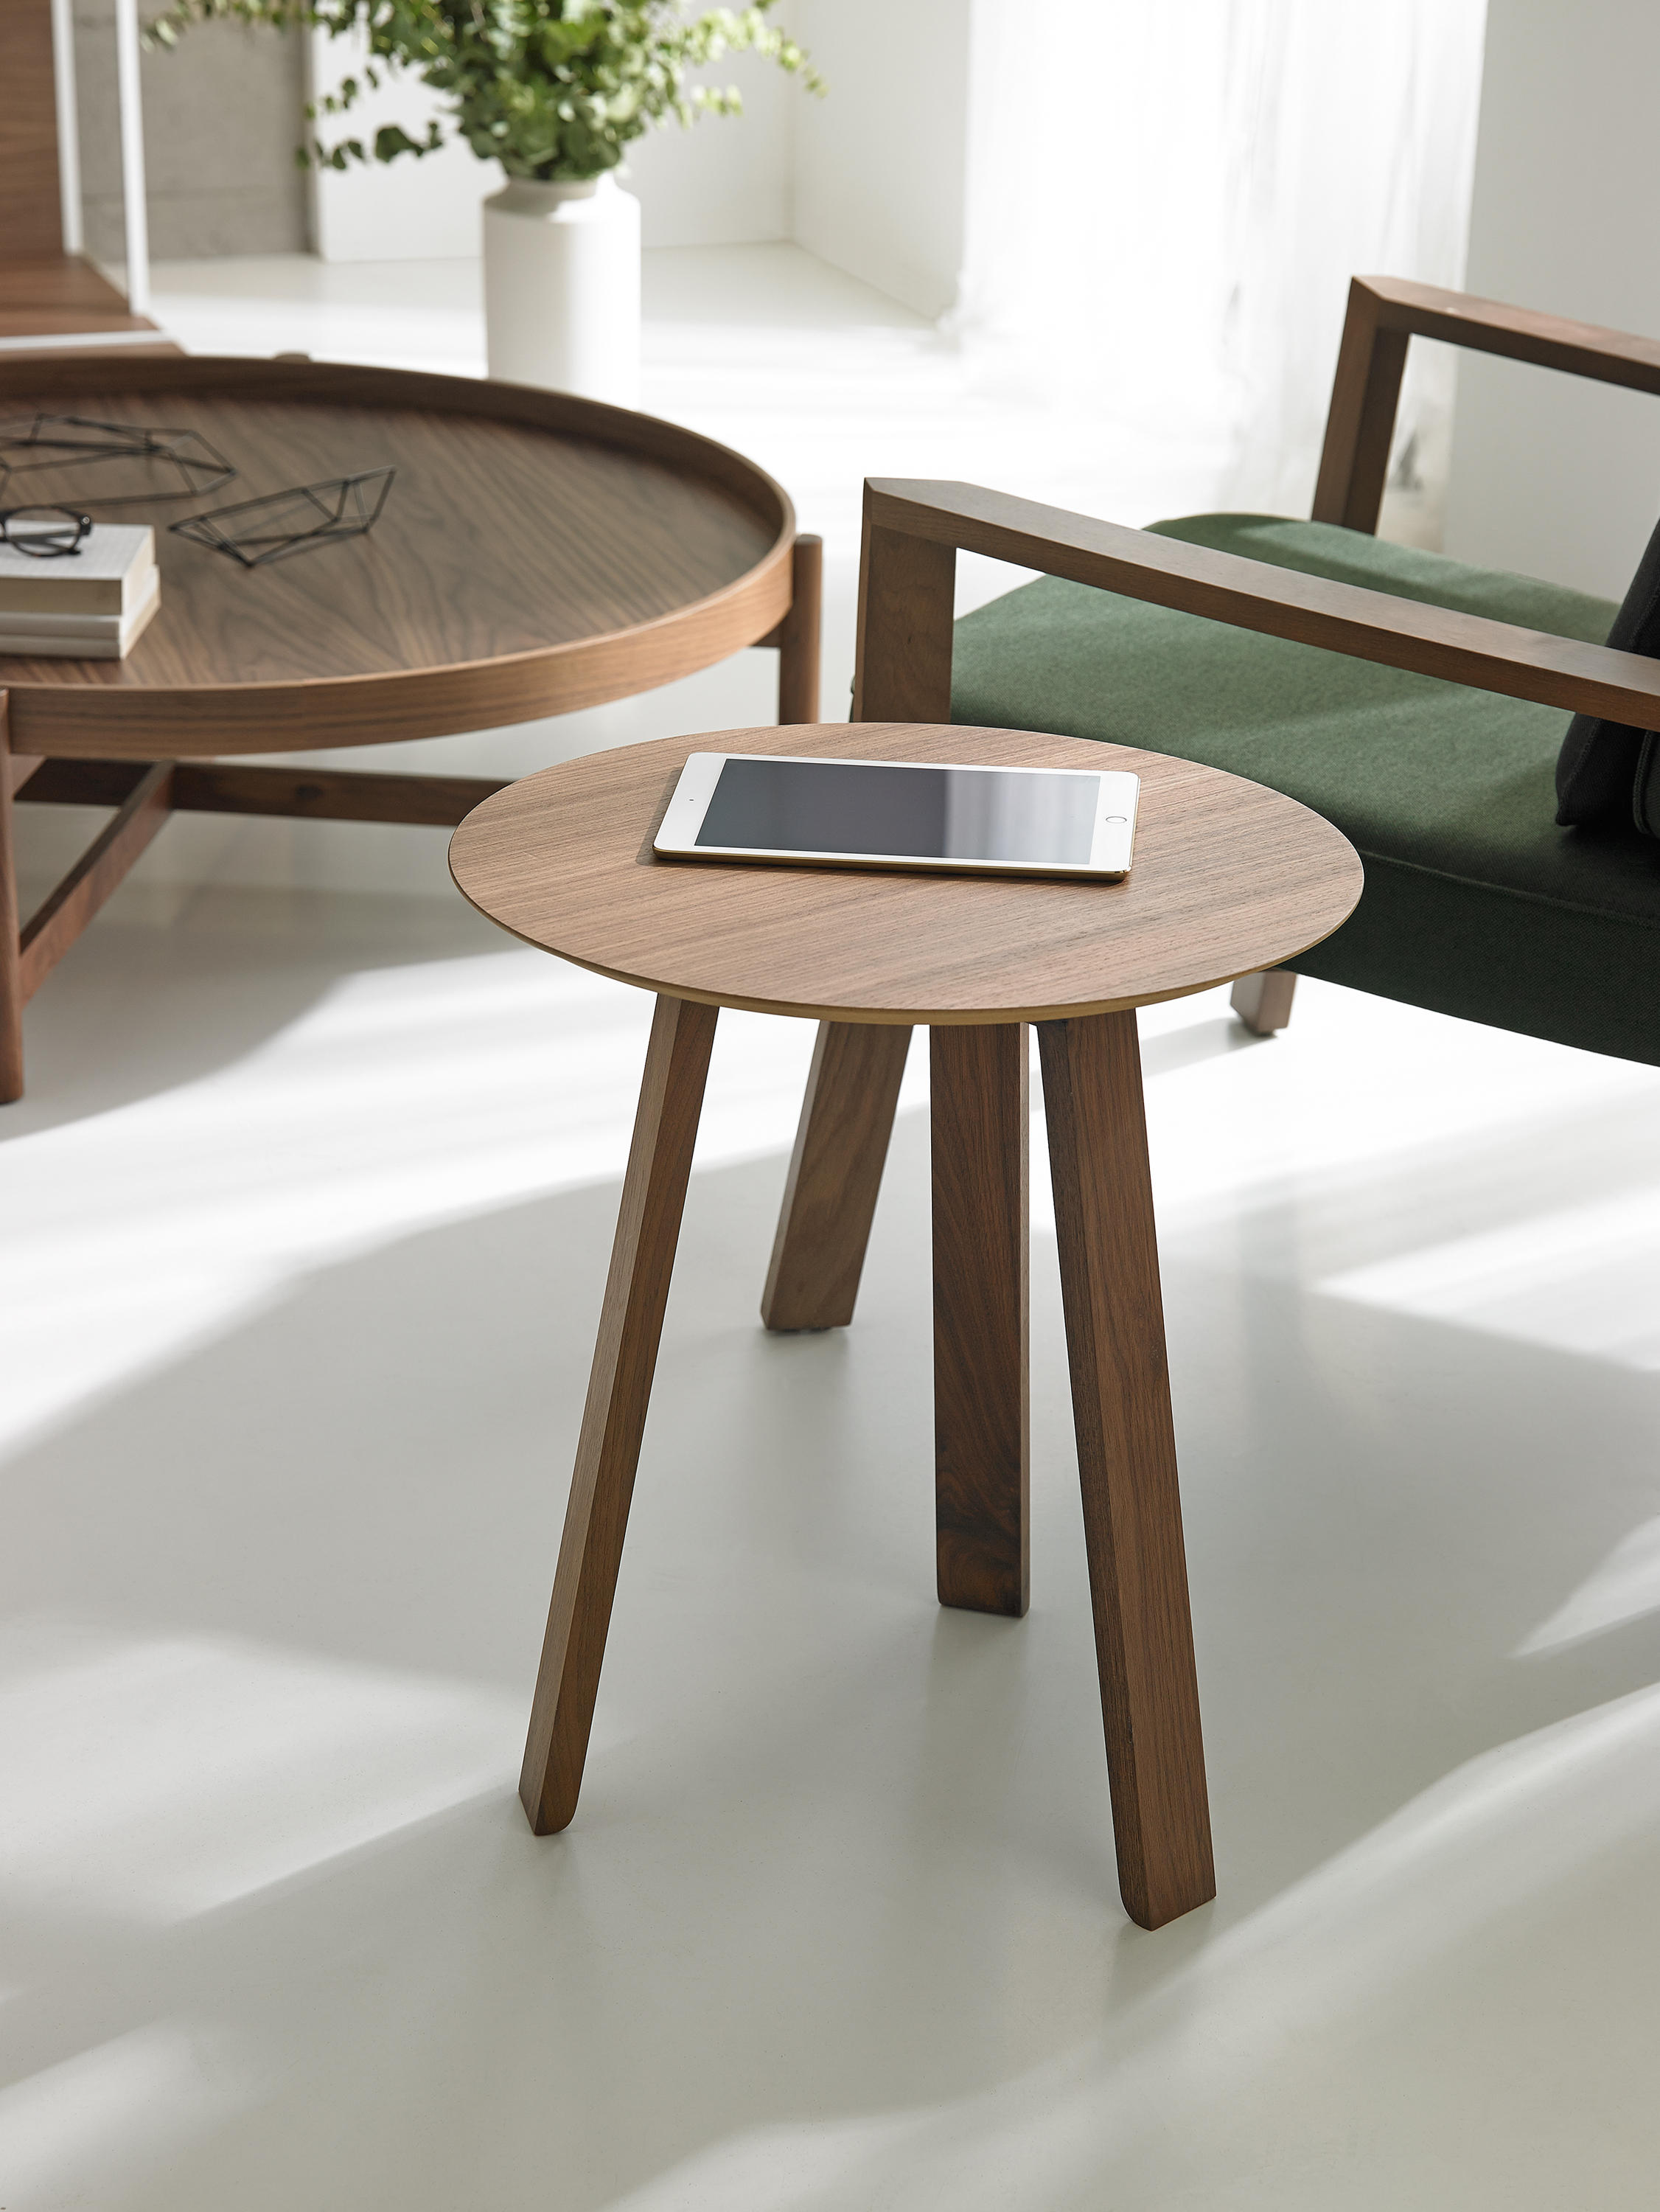 Couchtisch Stockholm Stockholm Low Table Couchtische Von Punt Mobles Architonic